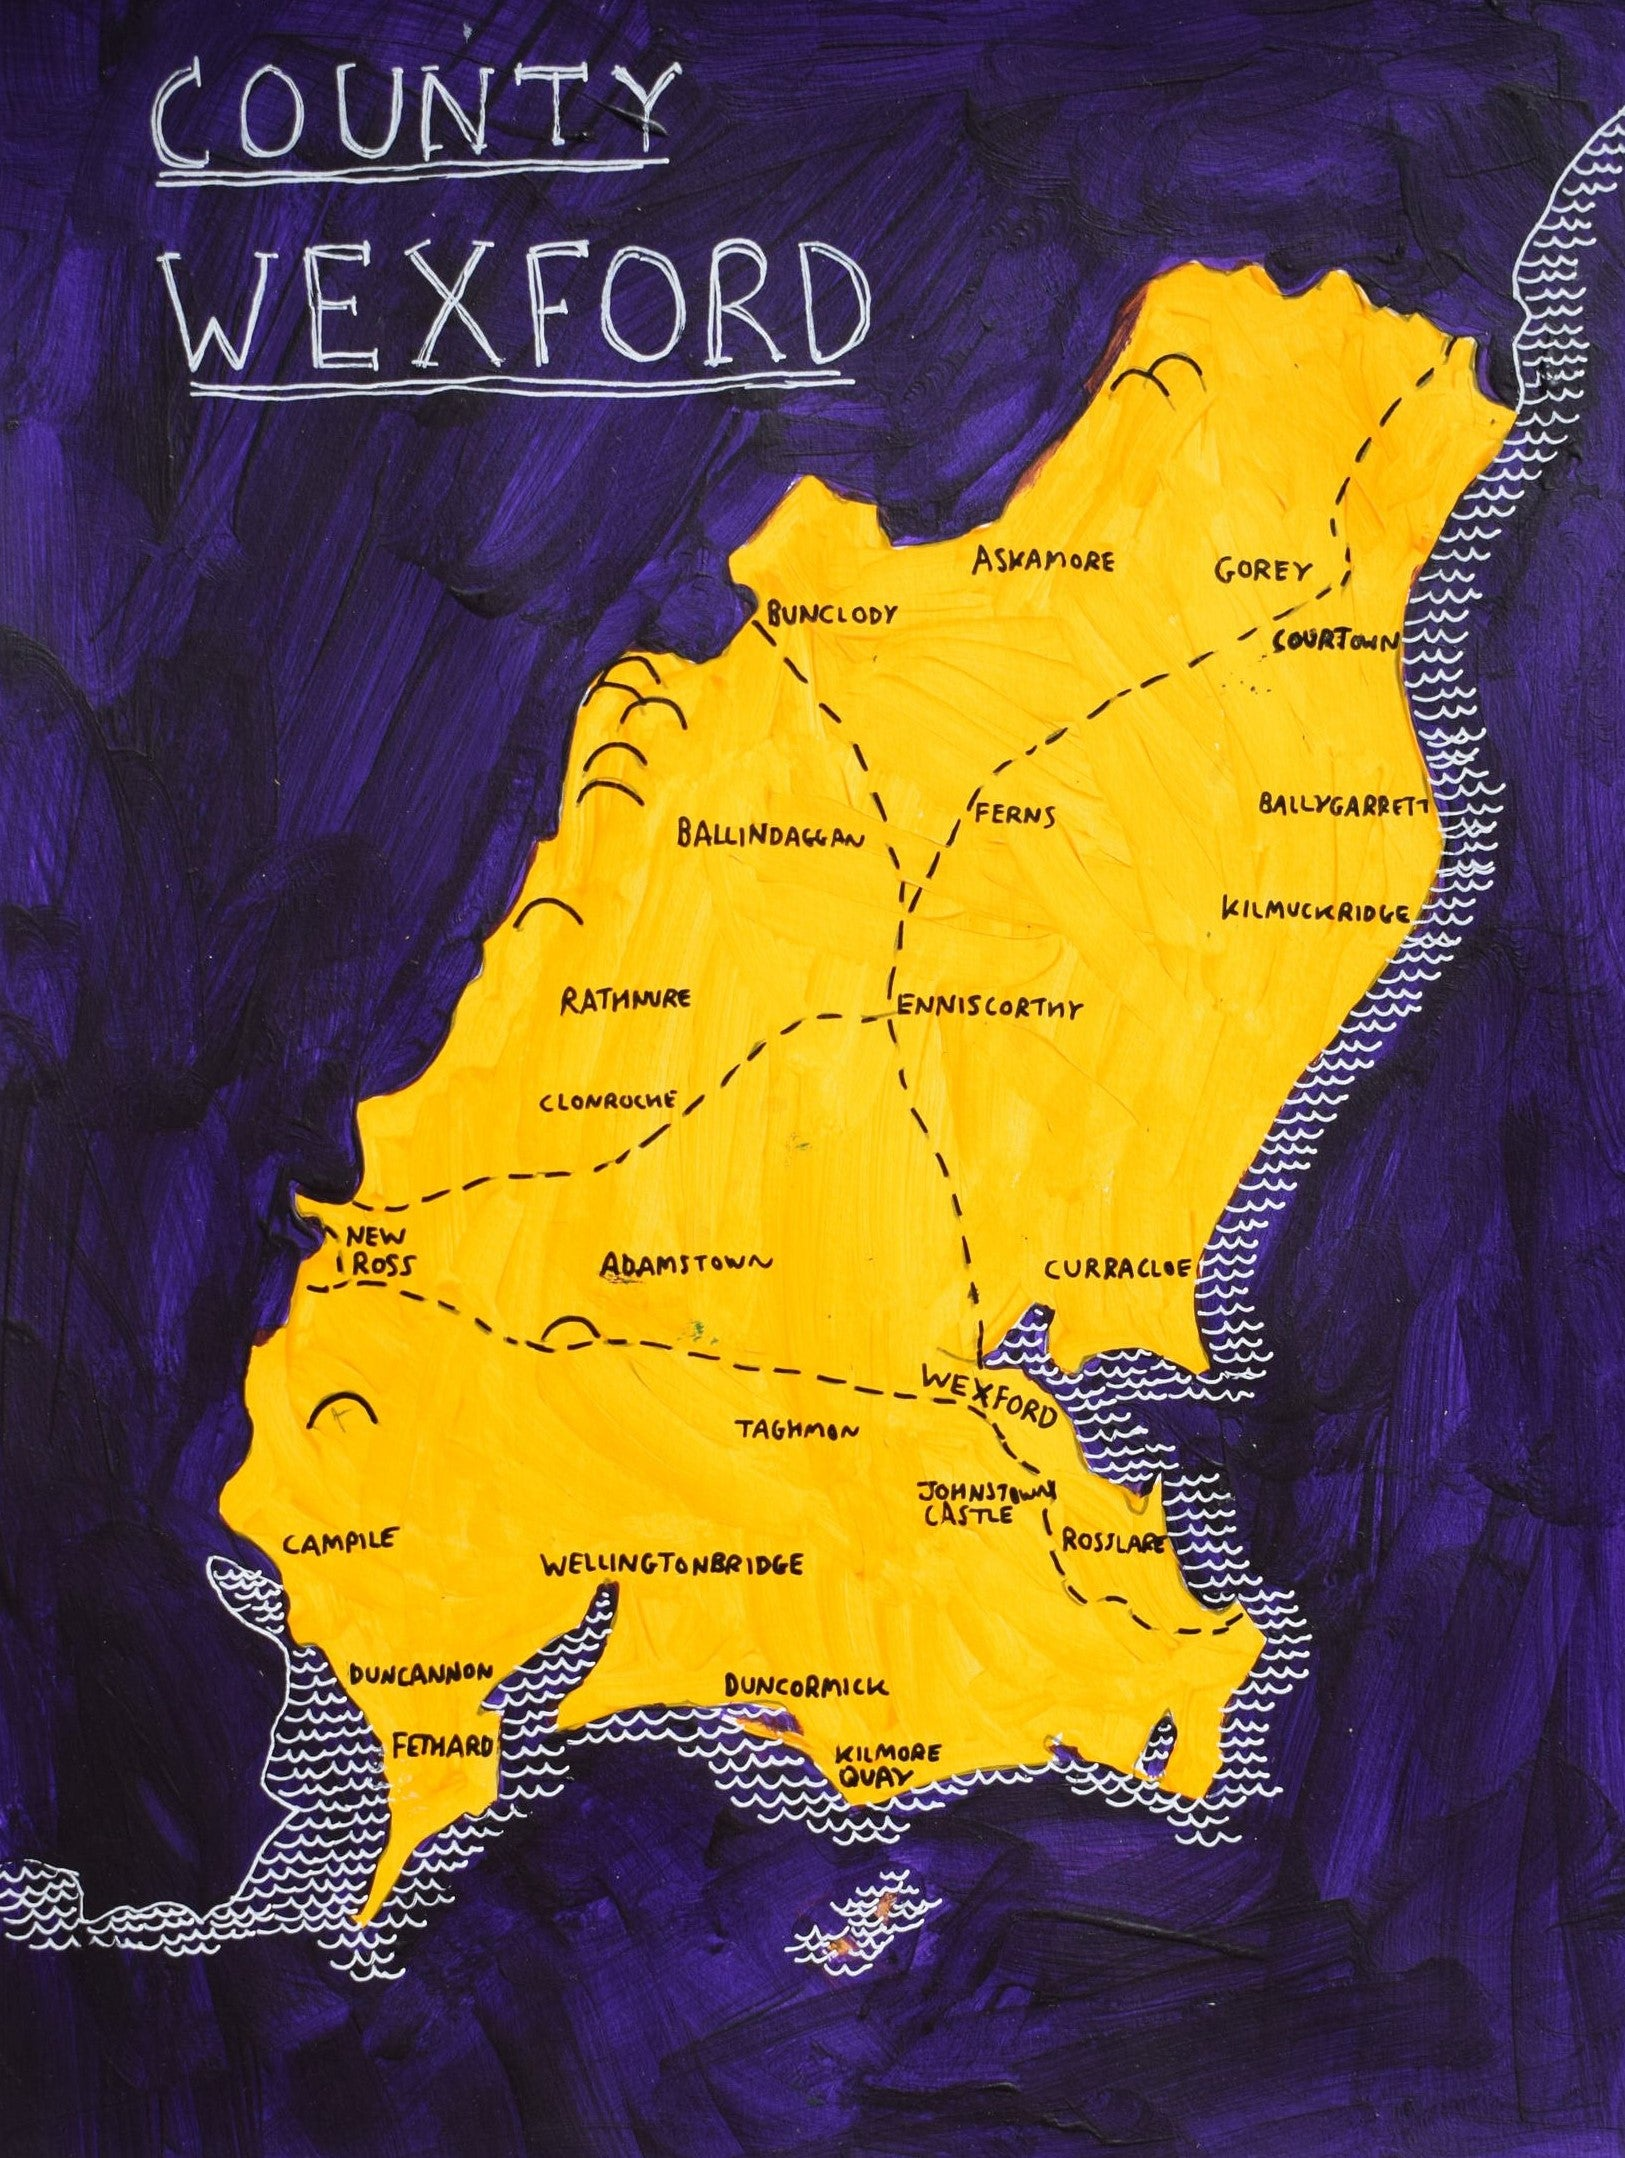 County Wexford Map, personalised gift idea | GAA colours ... on ireland wexford, courtown wexford, hook lighthouse wexford, whites hotel wexford, co wexford,